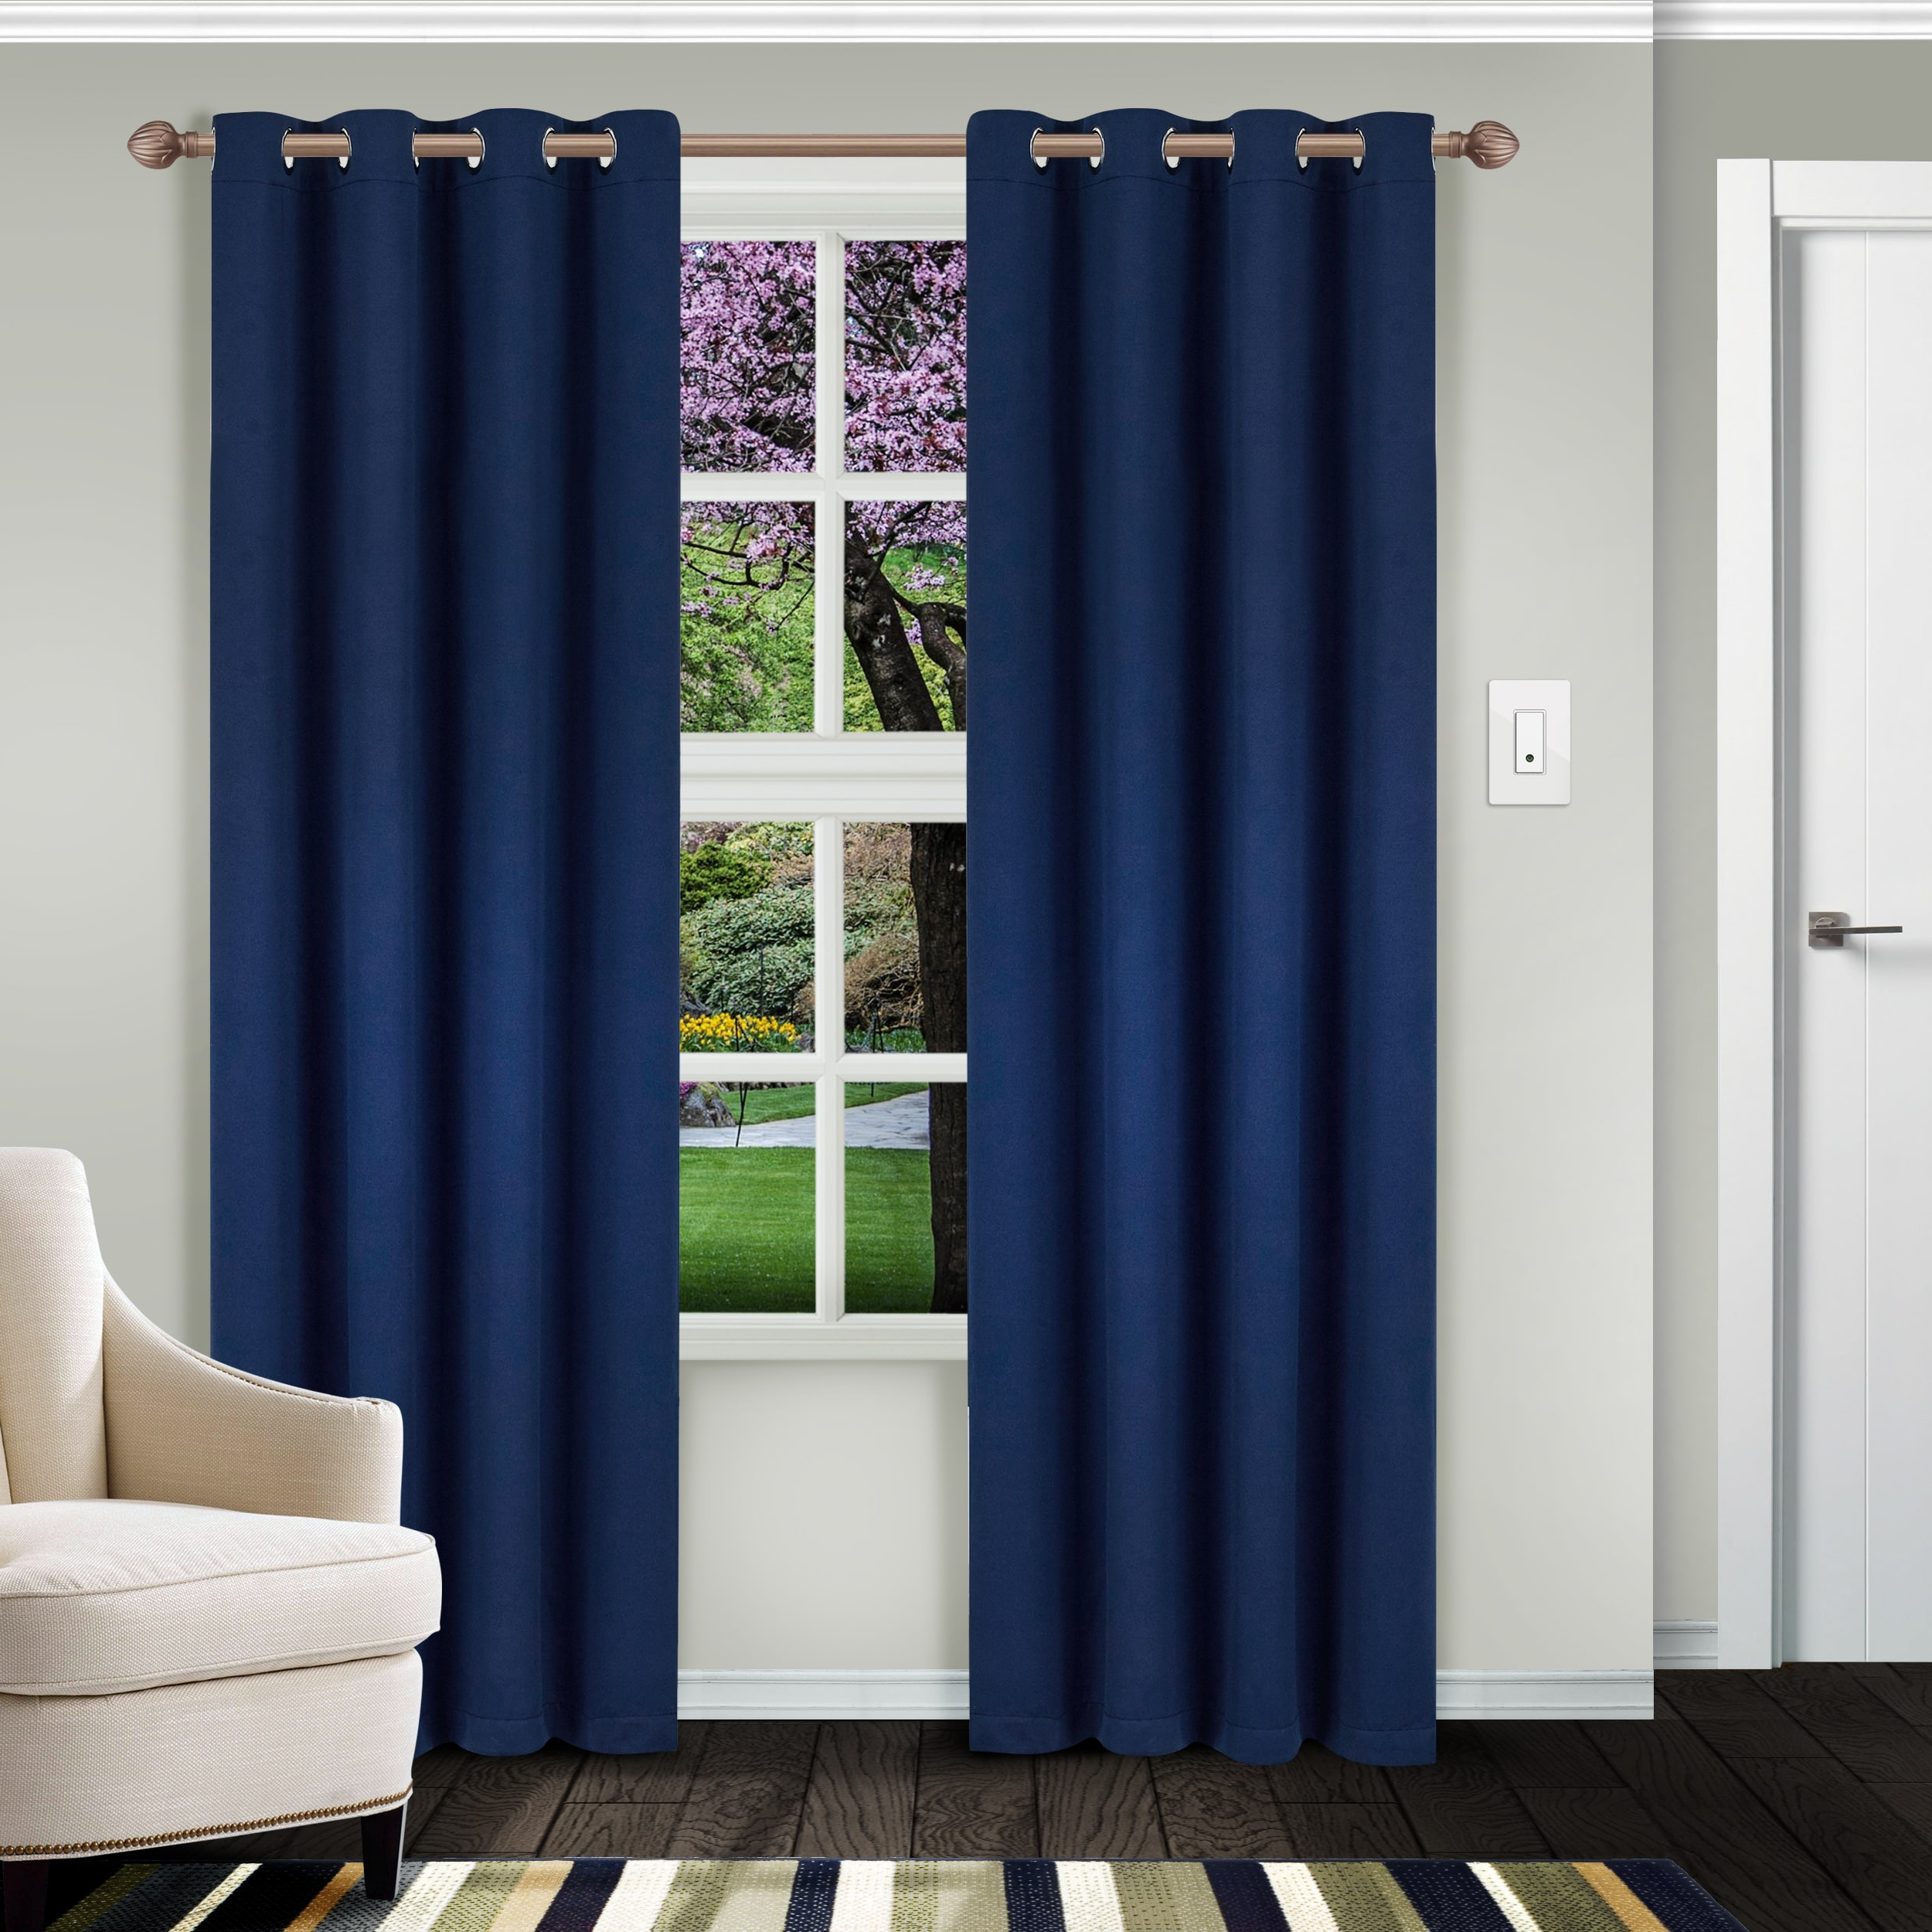 Fashionable Superior Solid Insulated Thermal Blackout Grommet Curtain With Regard To Solid Insulated Thermal Blackout Curtain Panel Pairs (View 4 of 20)